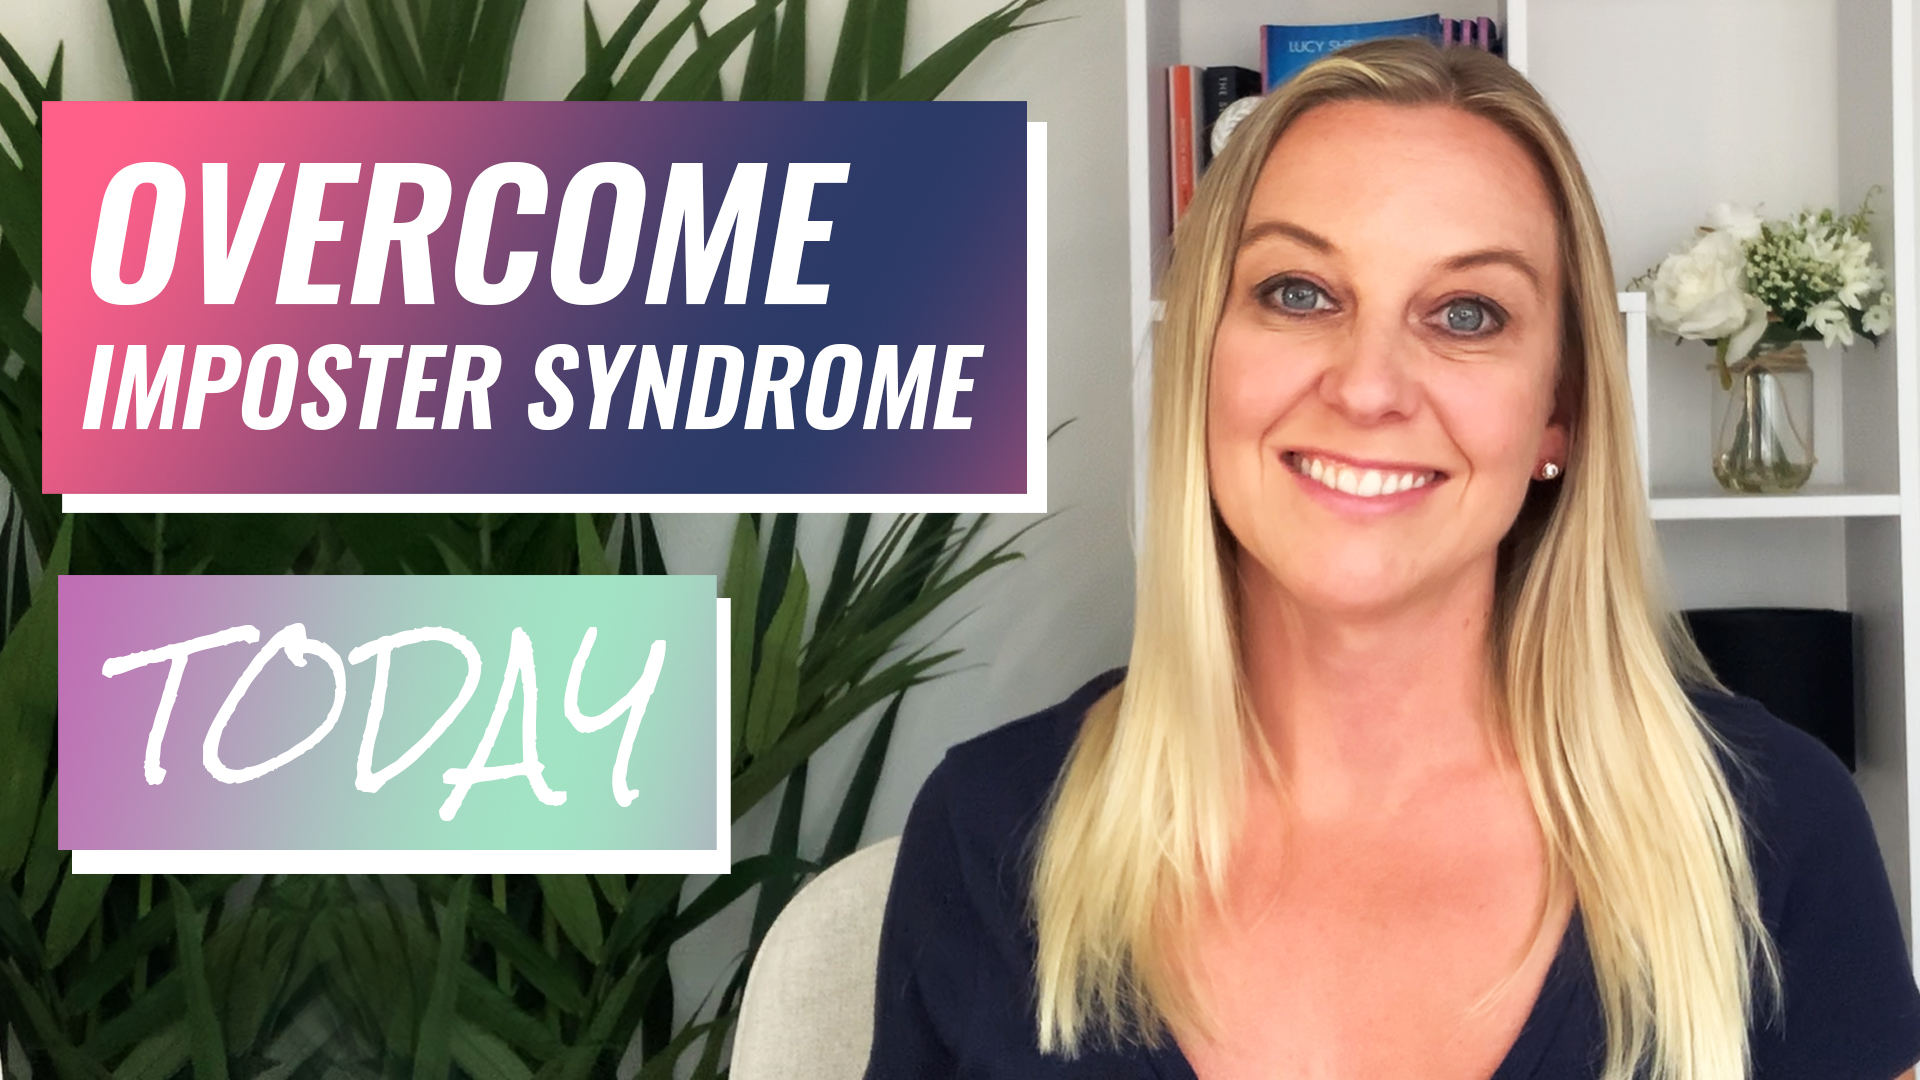 overcome imposter syndrome video thumbnail